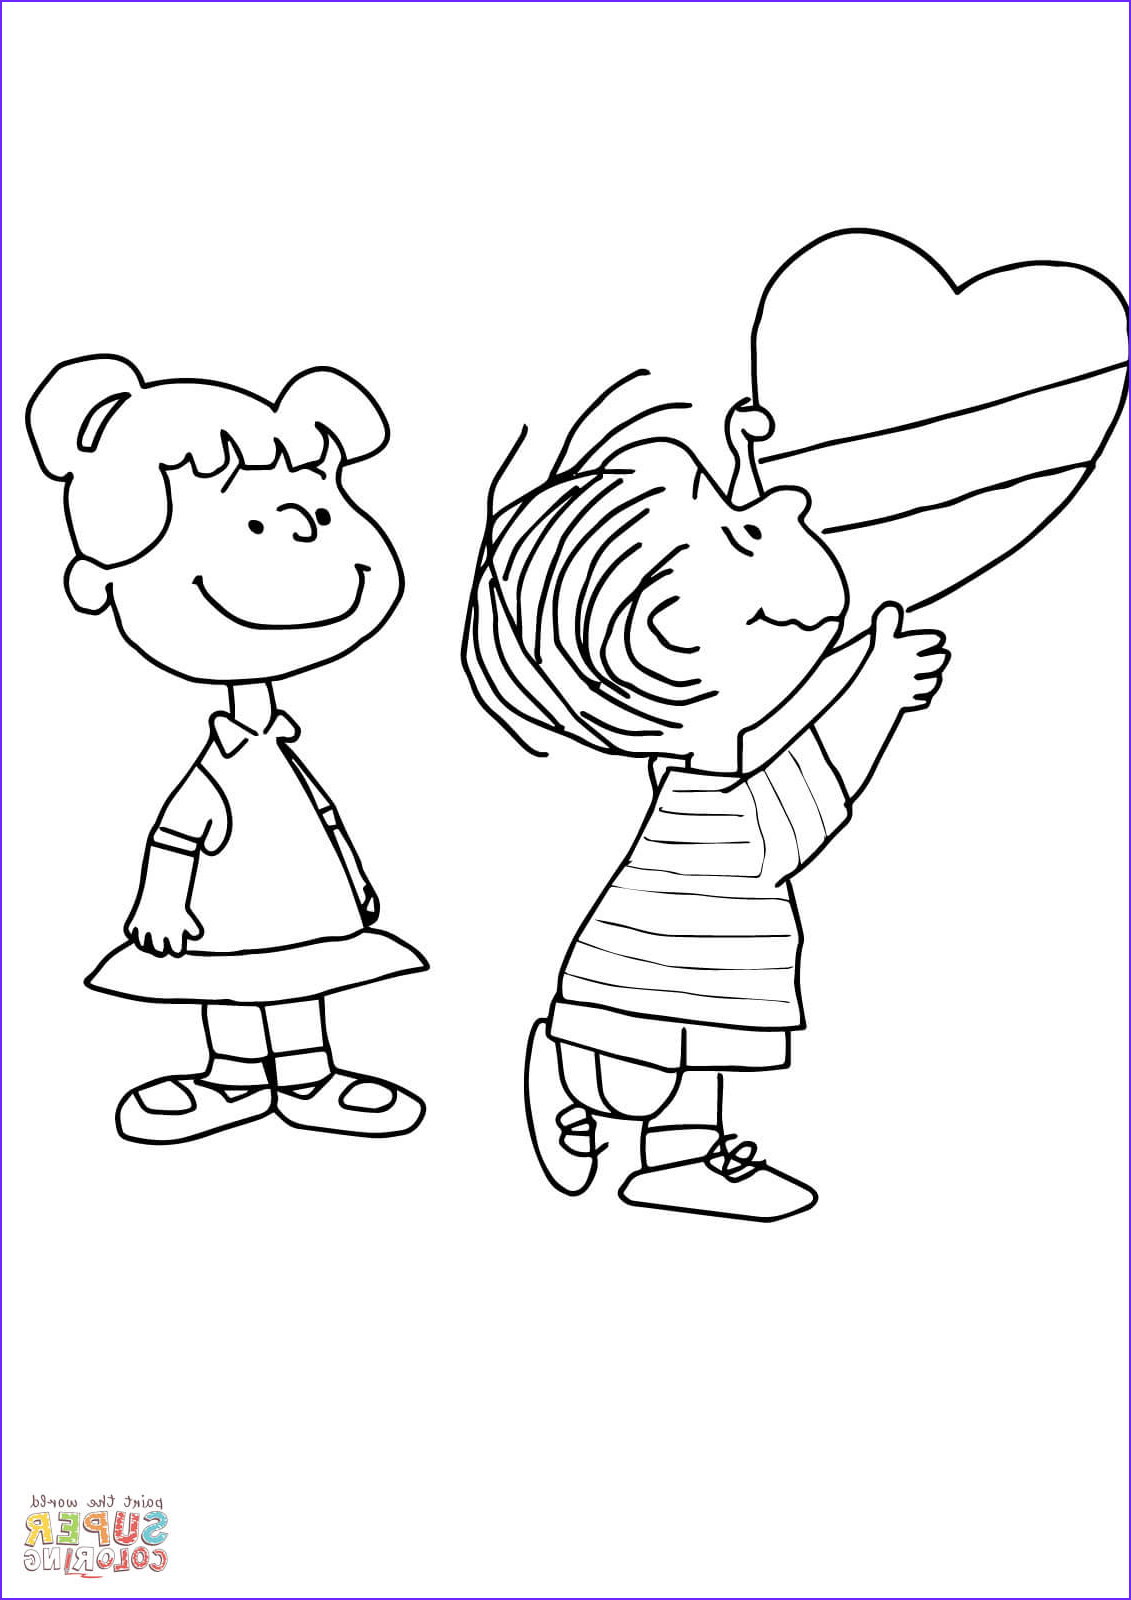 Charlie Brown Coloring Pages Luxury Gallery Charlie Brown Valentine Coloring Page